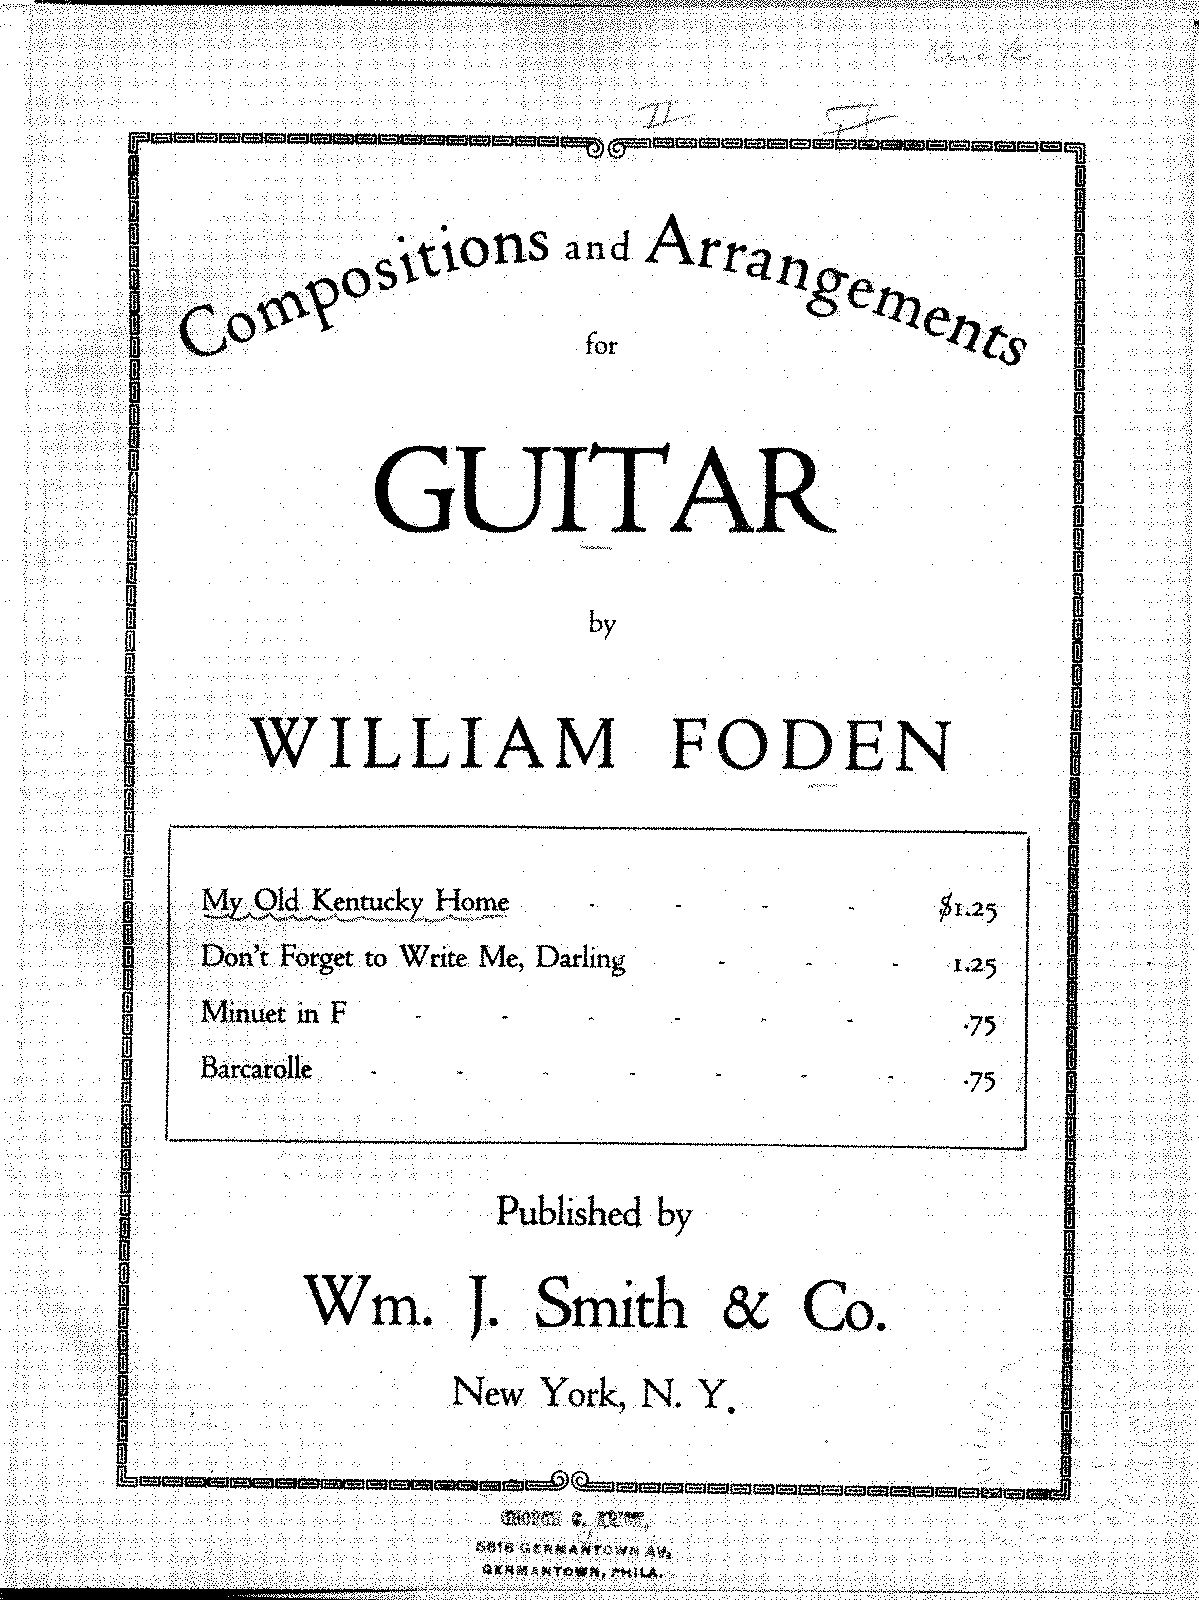 PMLP134215-william foden - kentucky.pdf